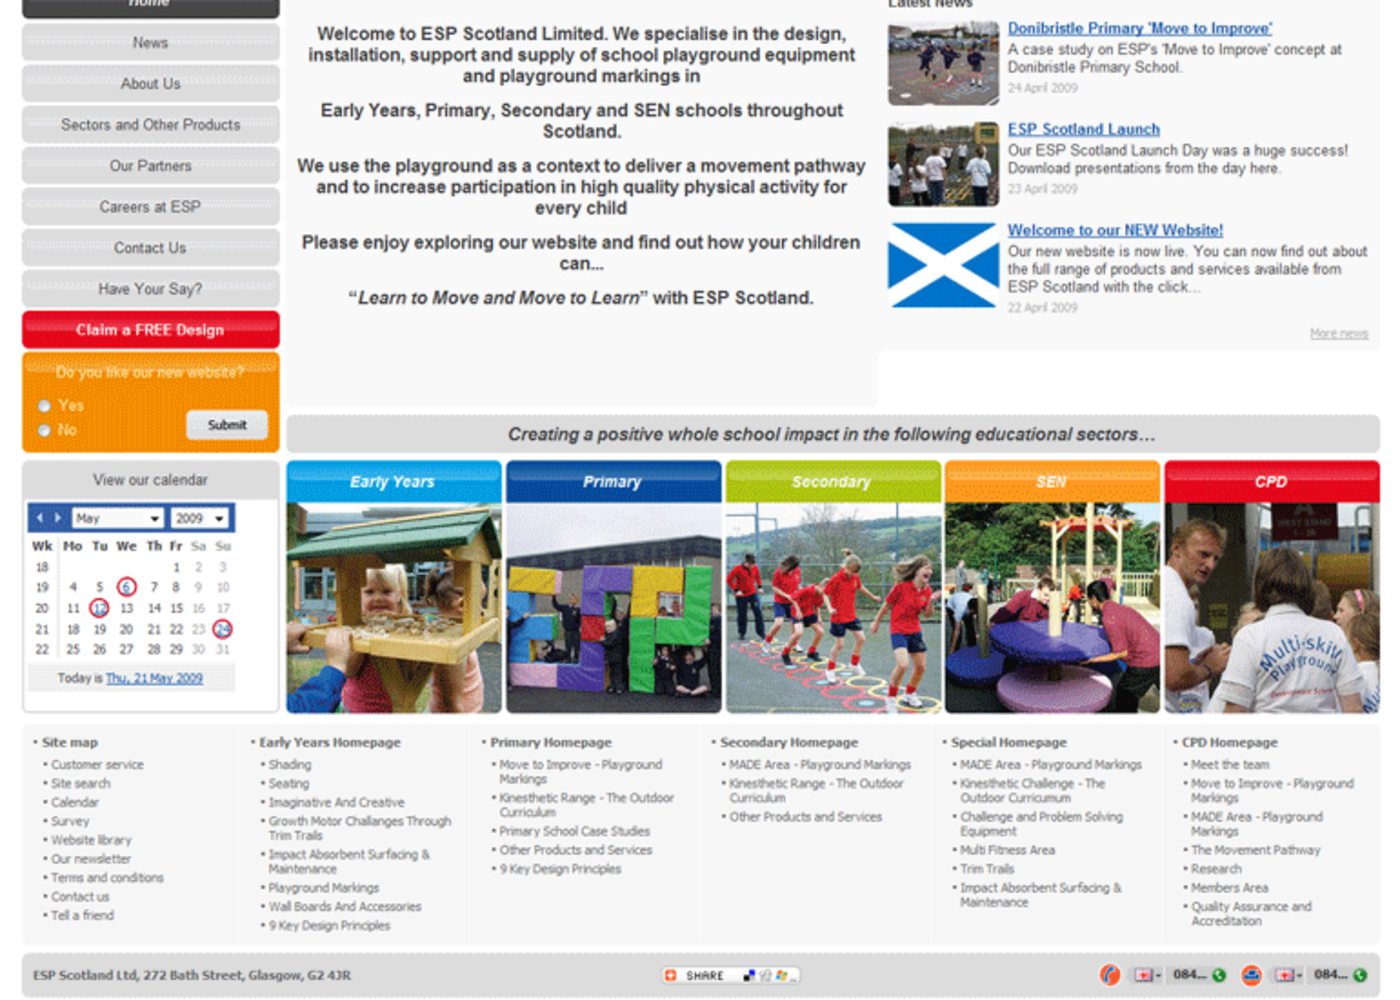 Education and Special Projects Scotland Homepage footer